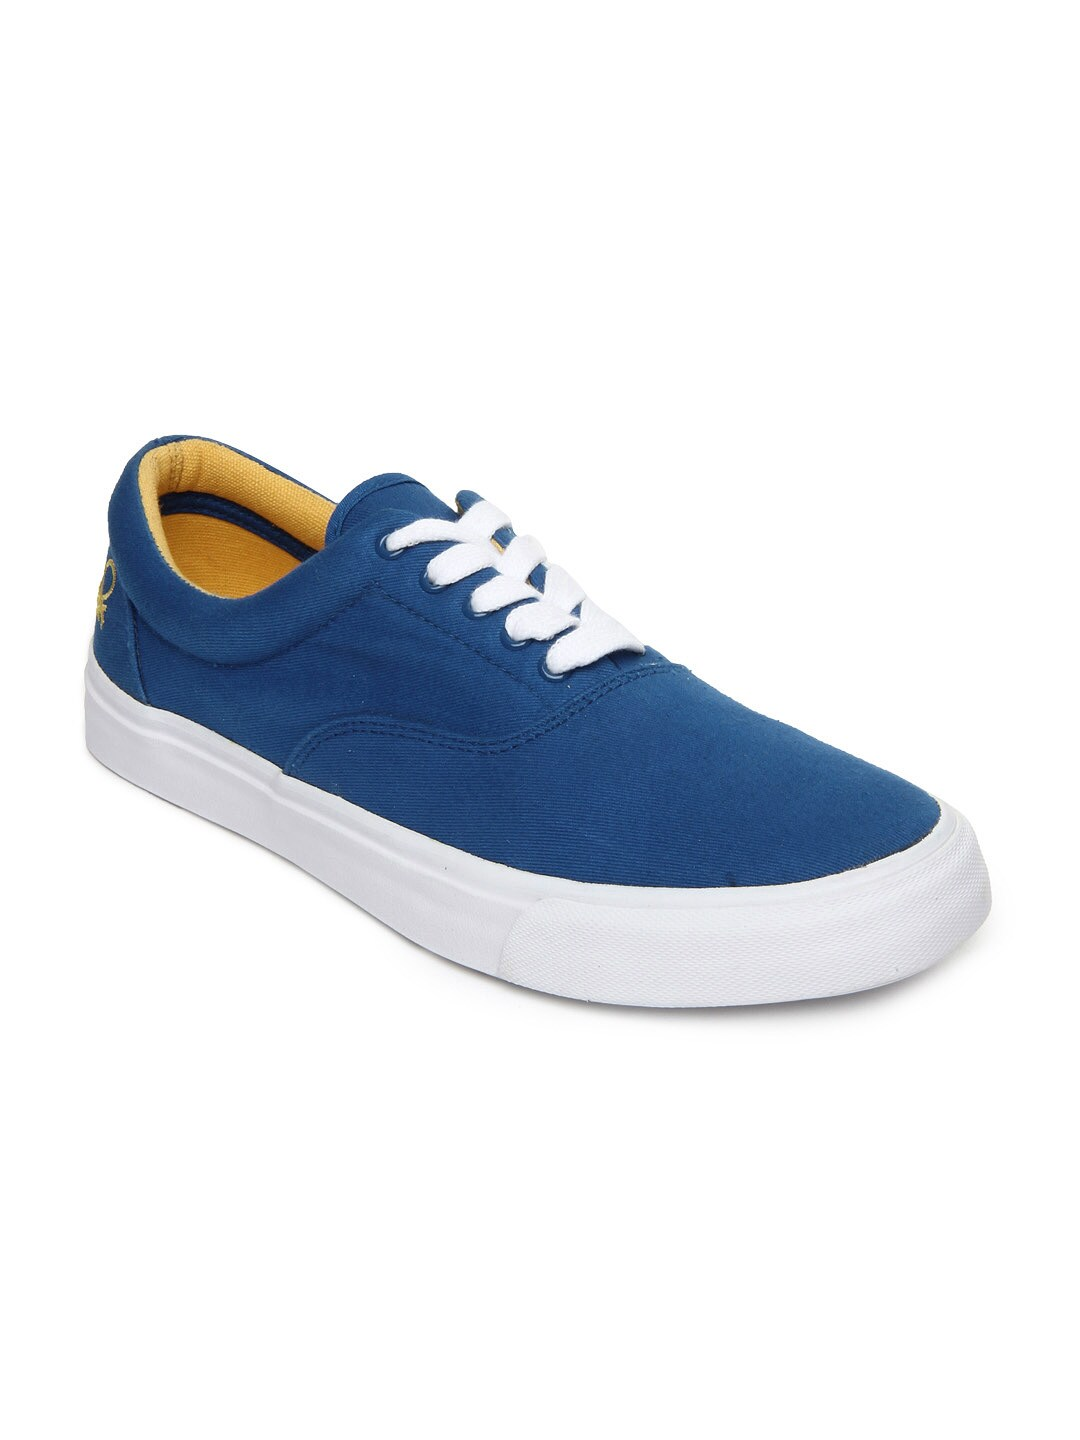 buy united colors of benetton blue casual shoes